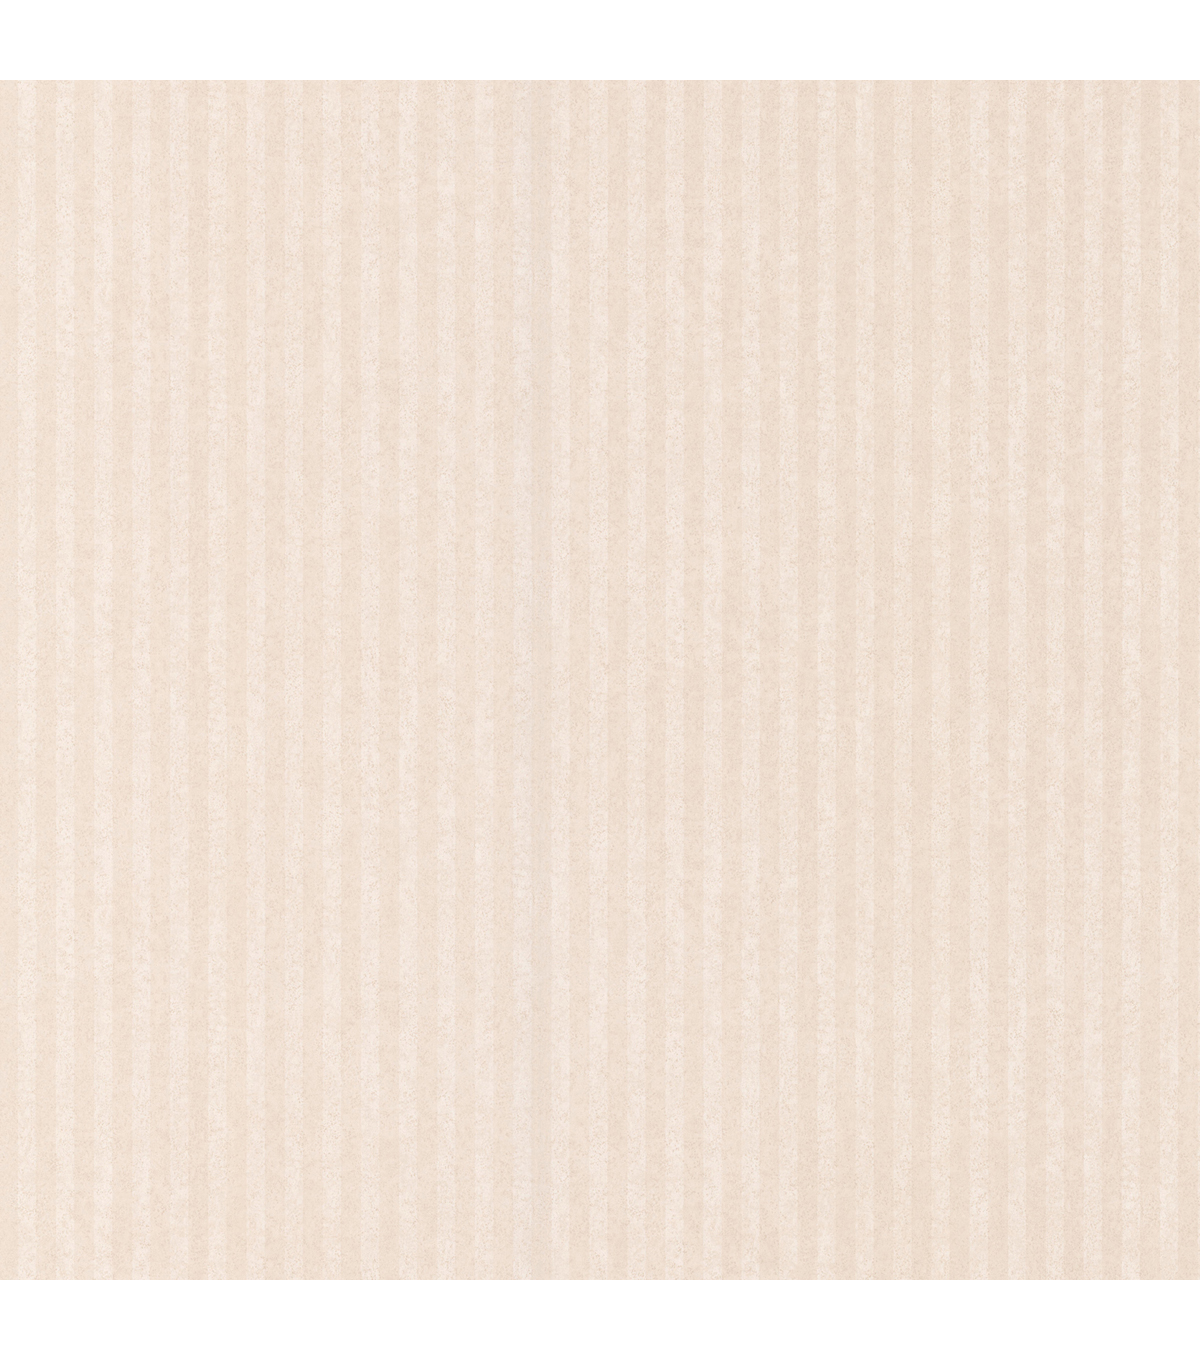 Hush Neutral Stripe Texture Wallpaper